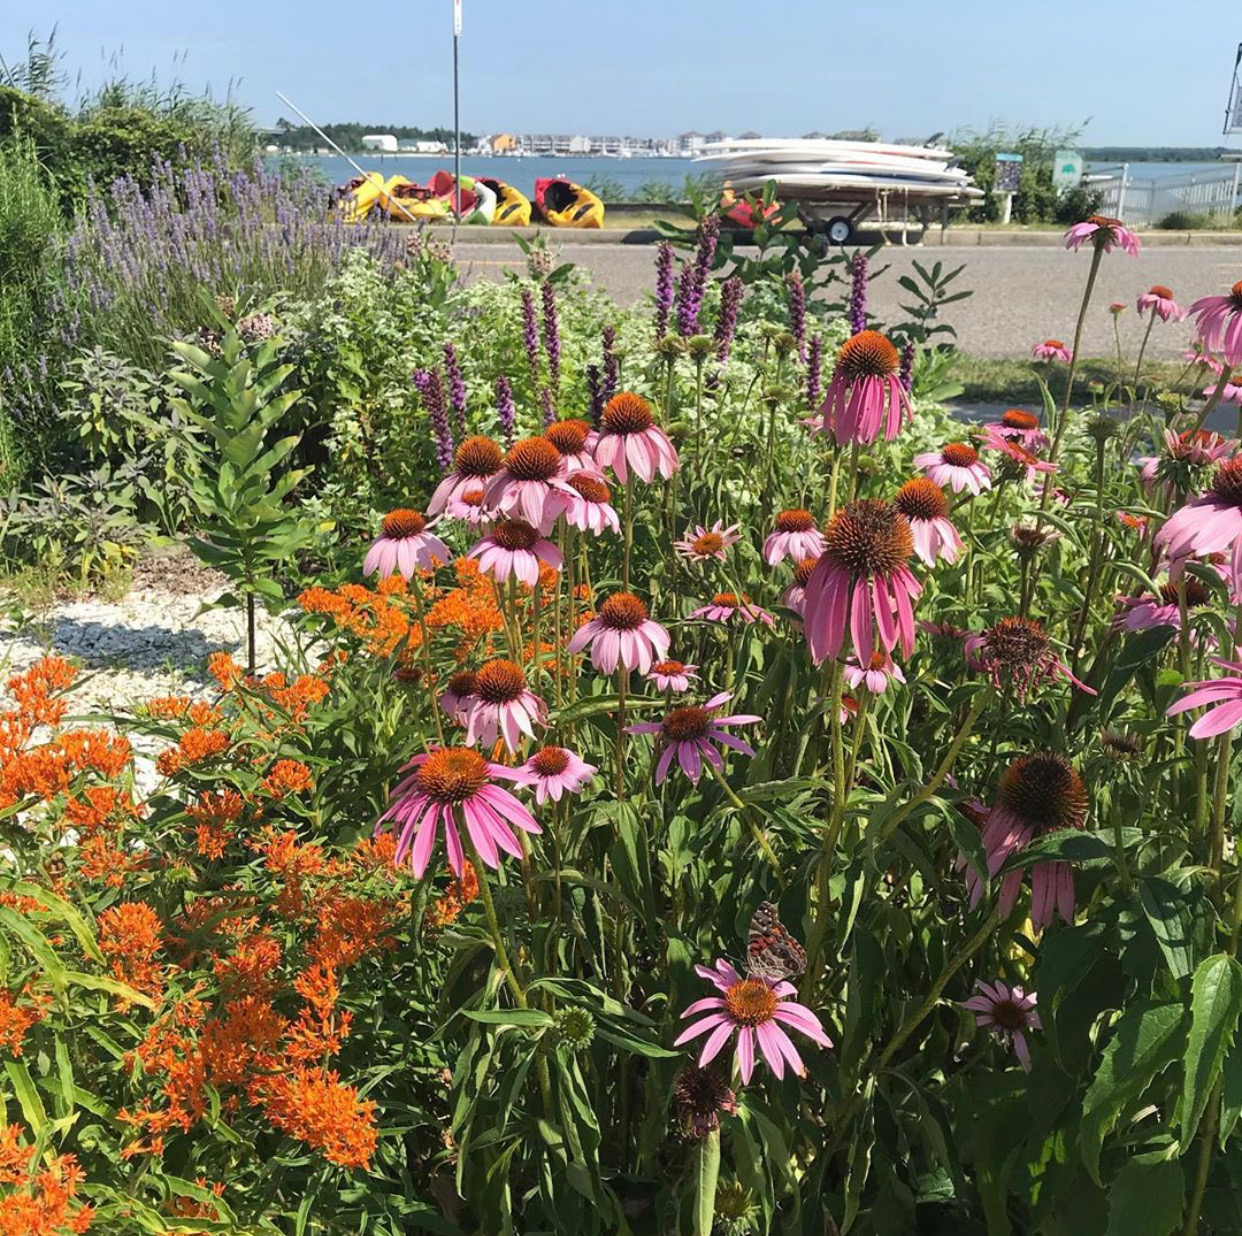 nj mom best gardens and nature centers new jersey nj audobon nature center of cape may